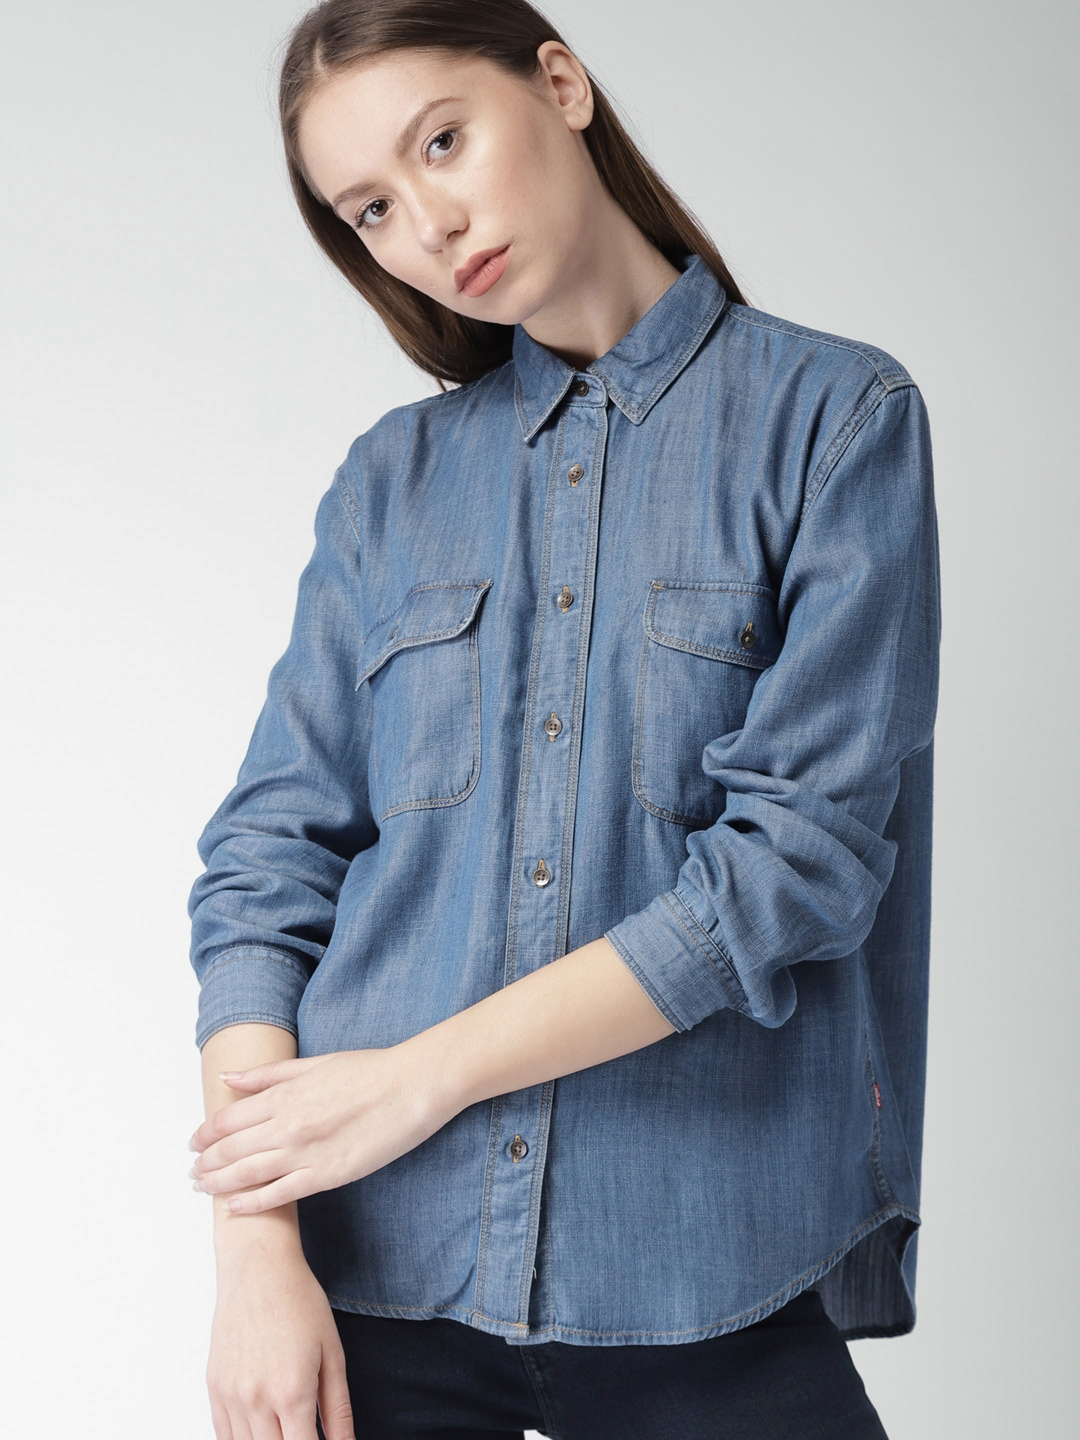 f58d0338f3fb Buy Levis Women Blue Classic Regular Fit Chambray Casual Shirt ...